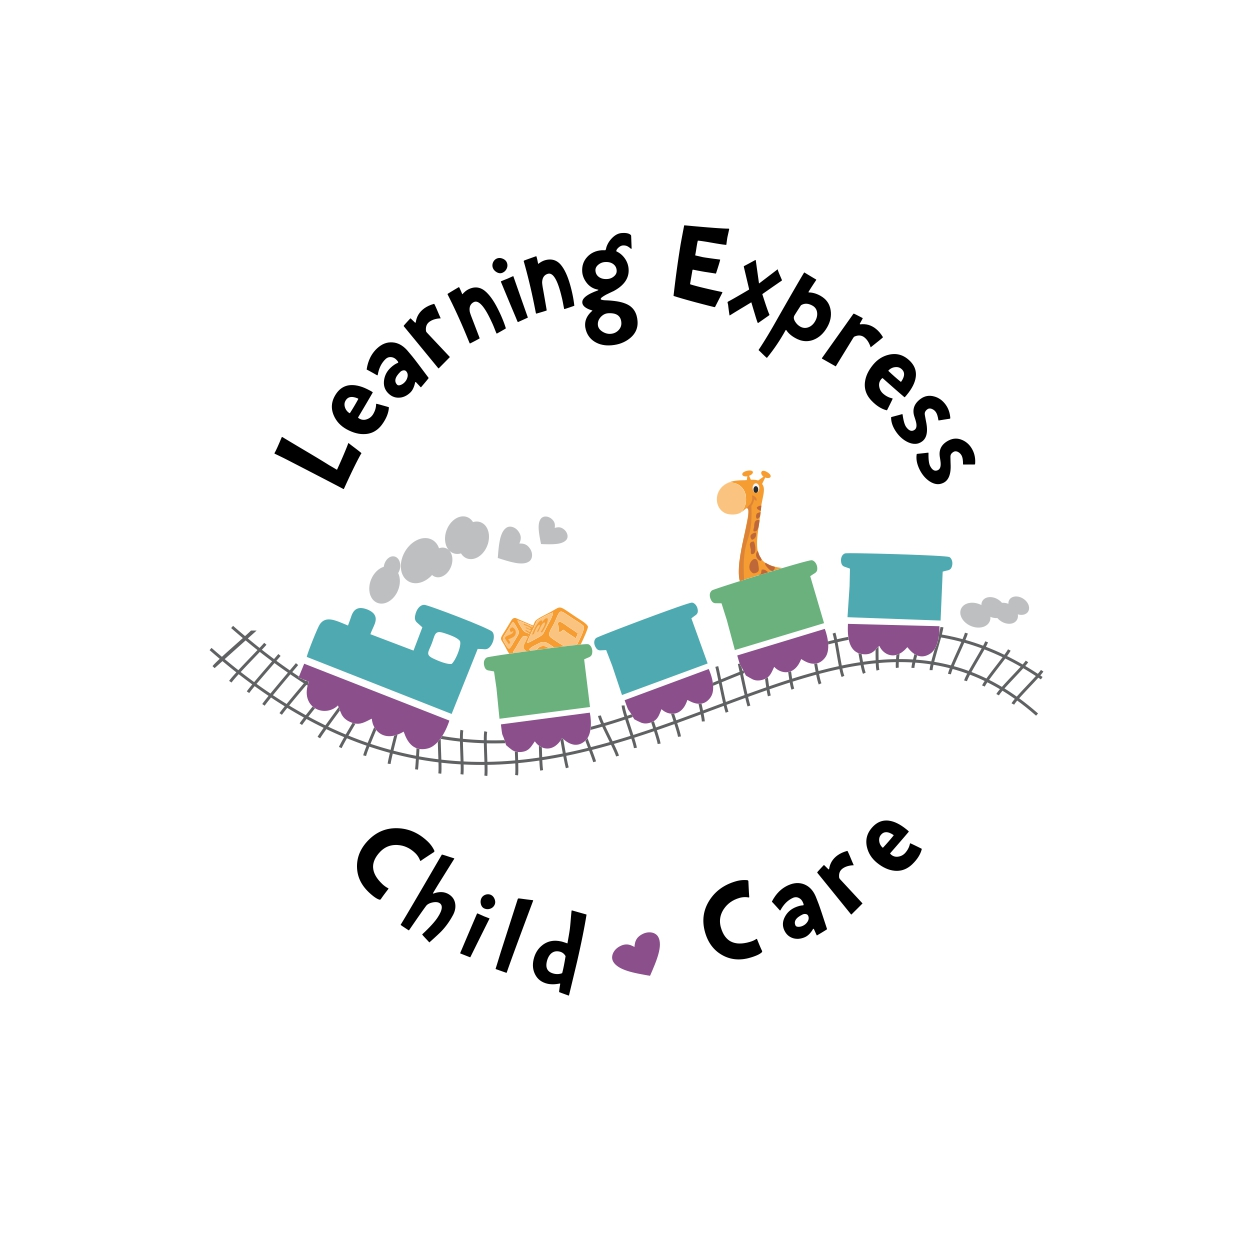 LEARNING EXPRESS CHILD CARE